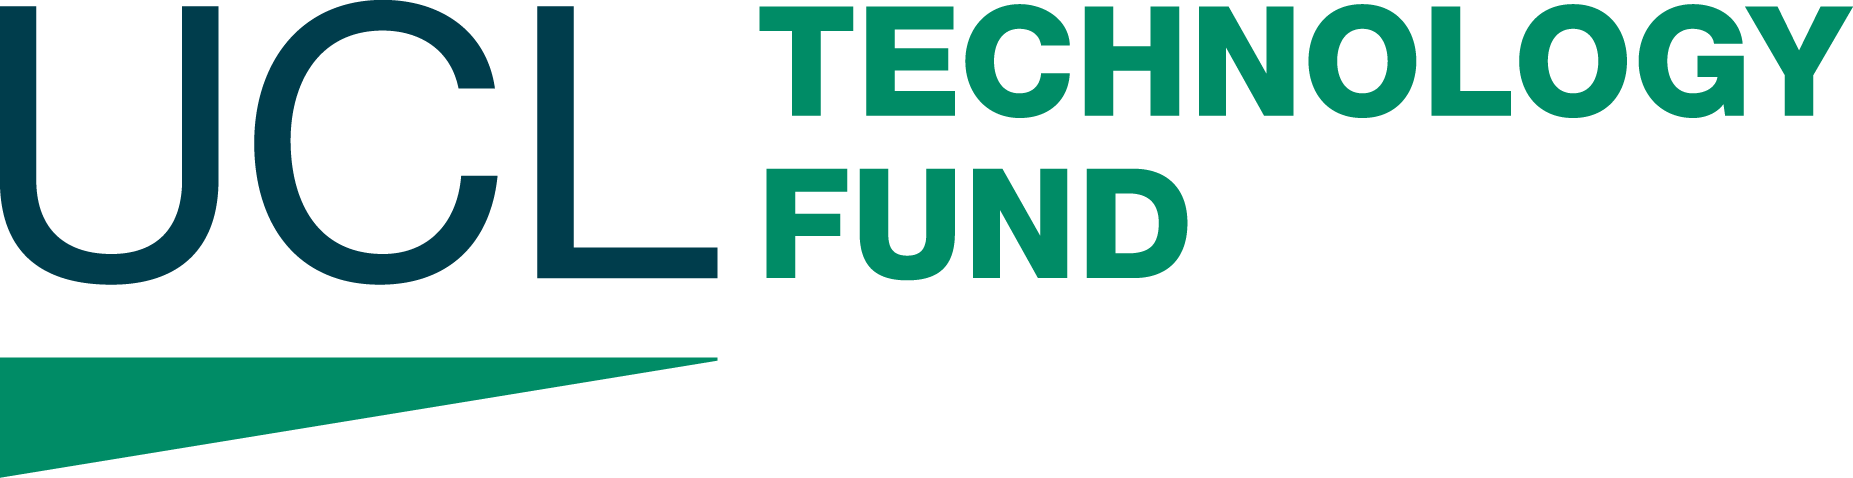 UCL Technology Fund